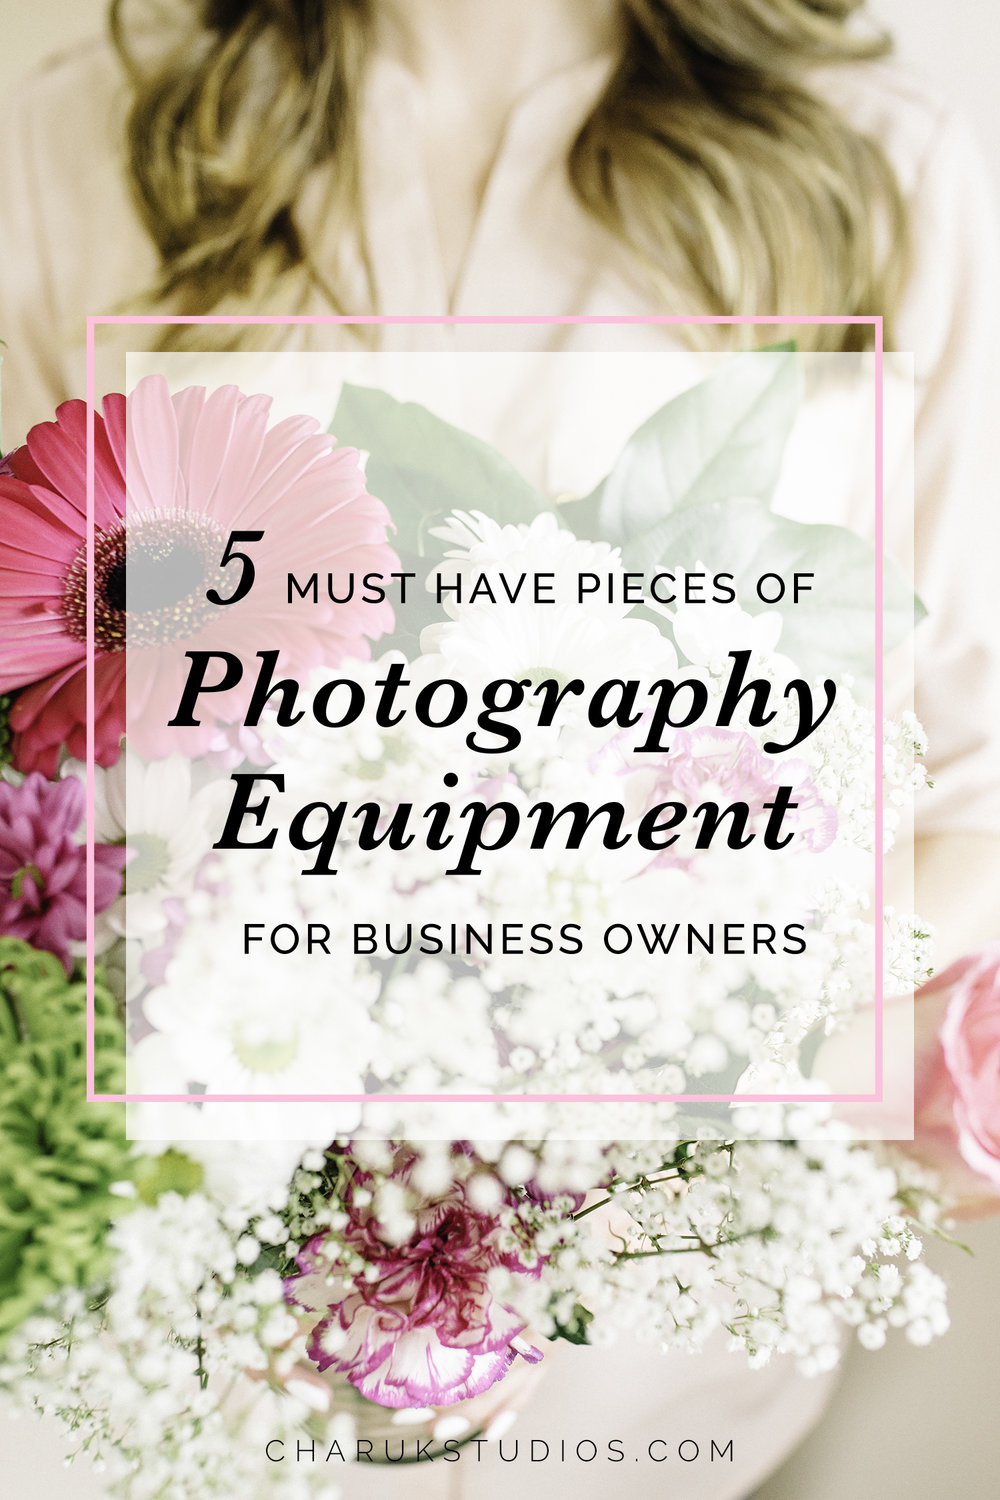 5 Must Have Pieces of Photography Equipment for Business Owners